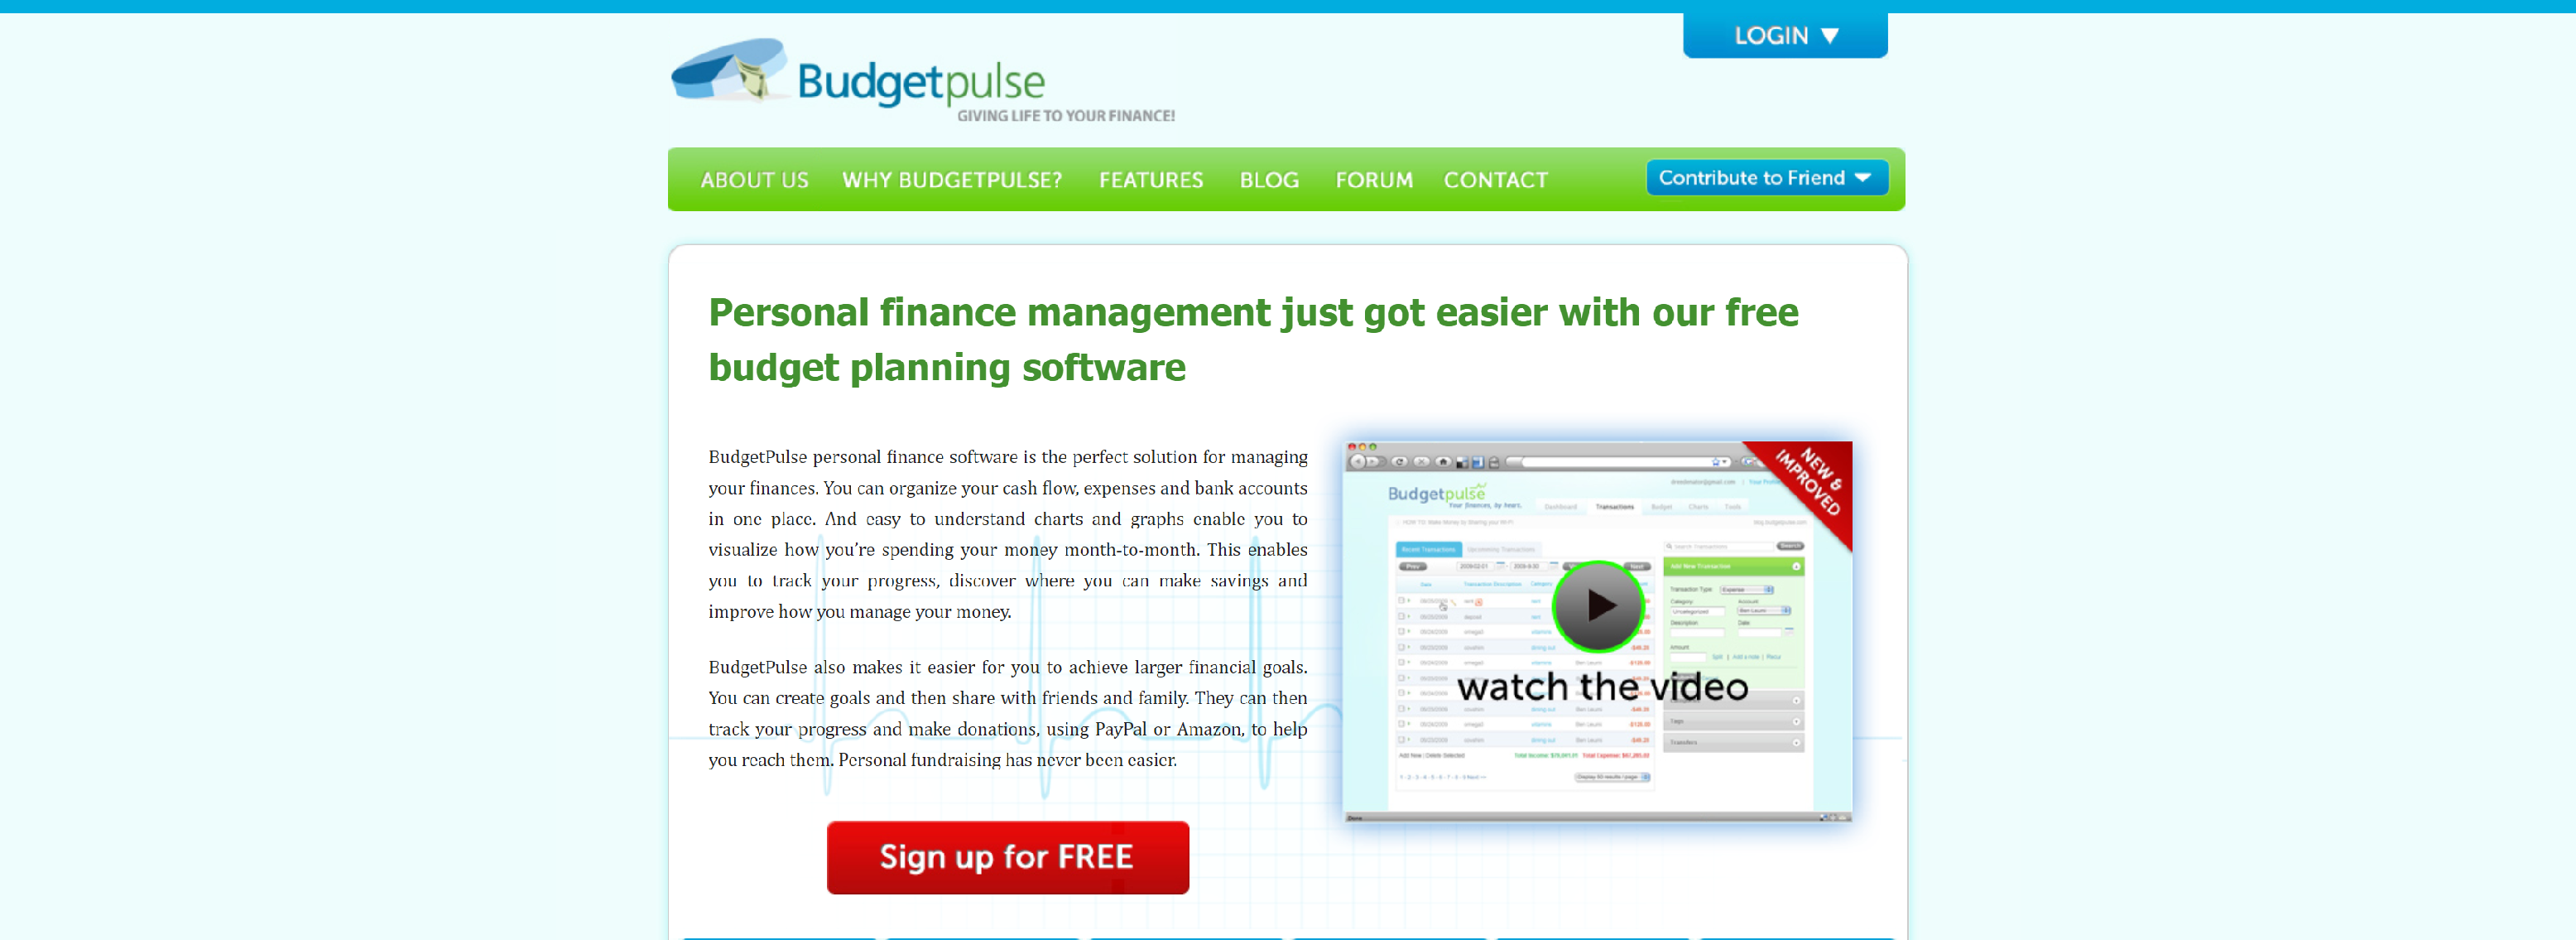 Top 8 Best Rated Personal Accounting Software Apps - 2019